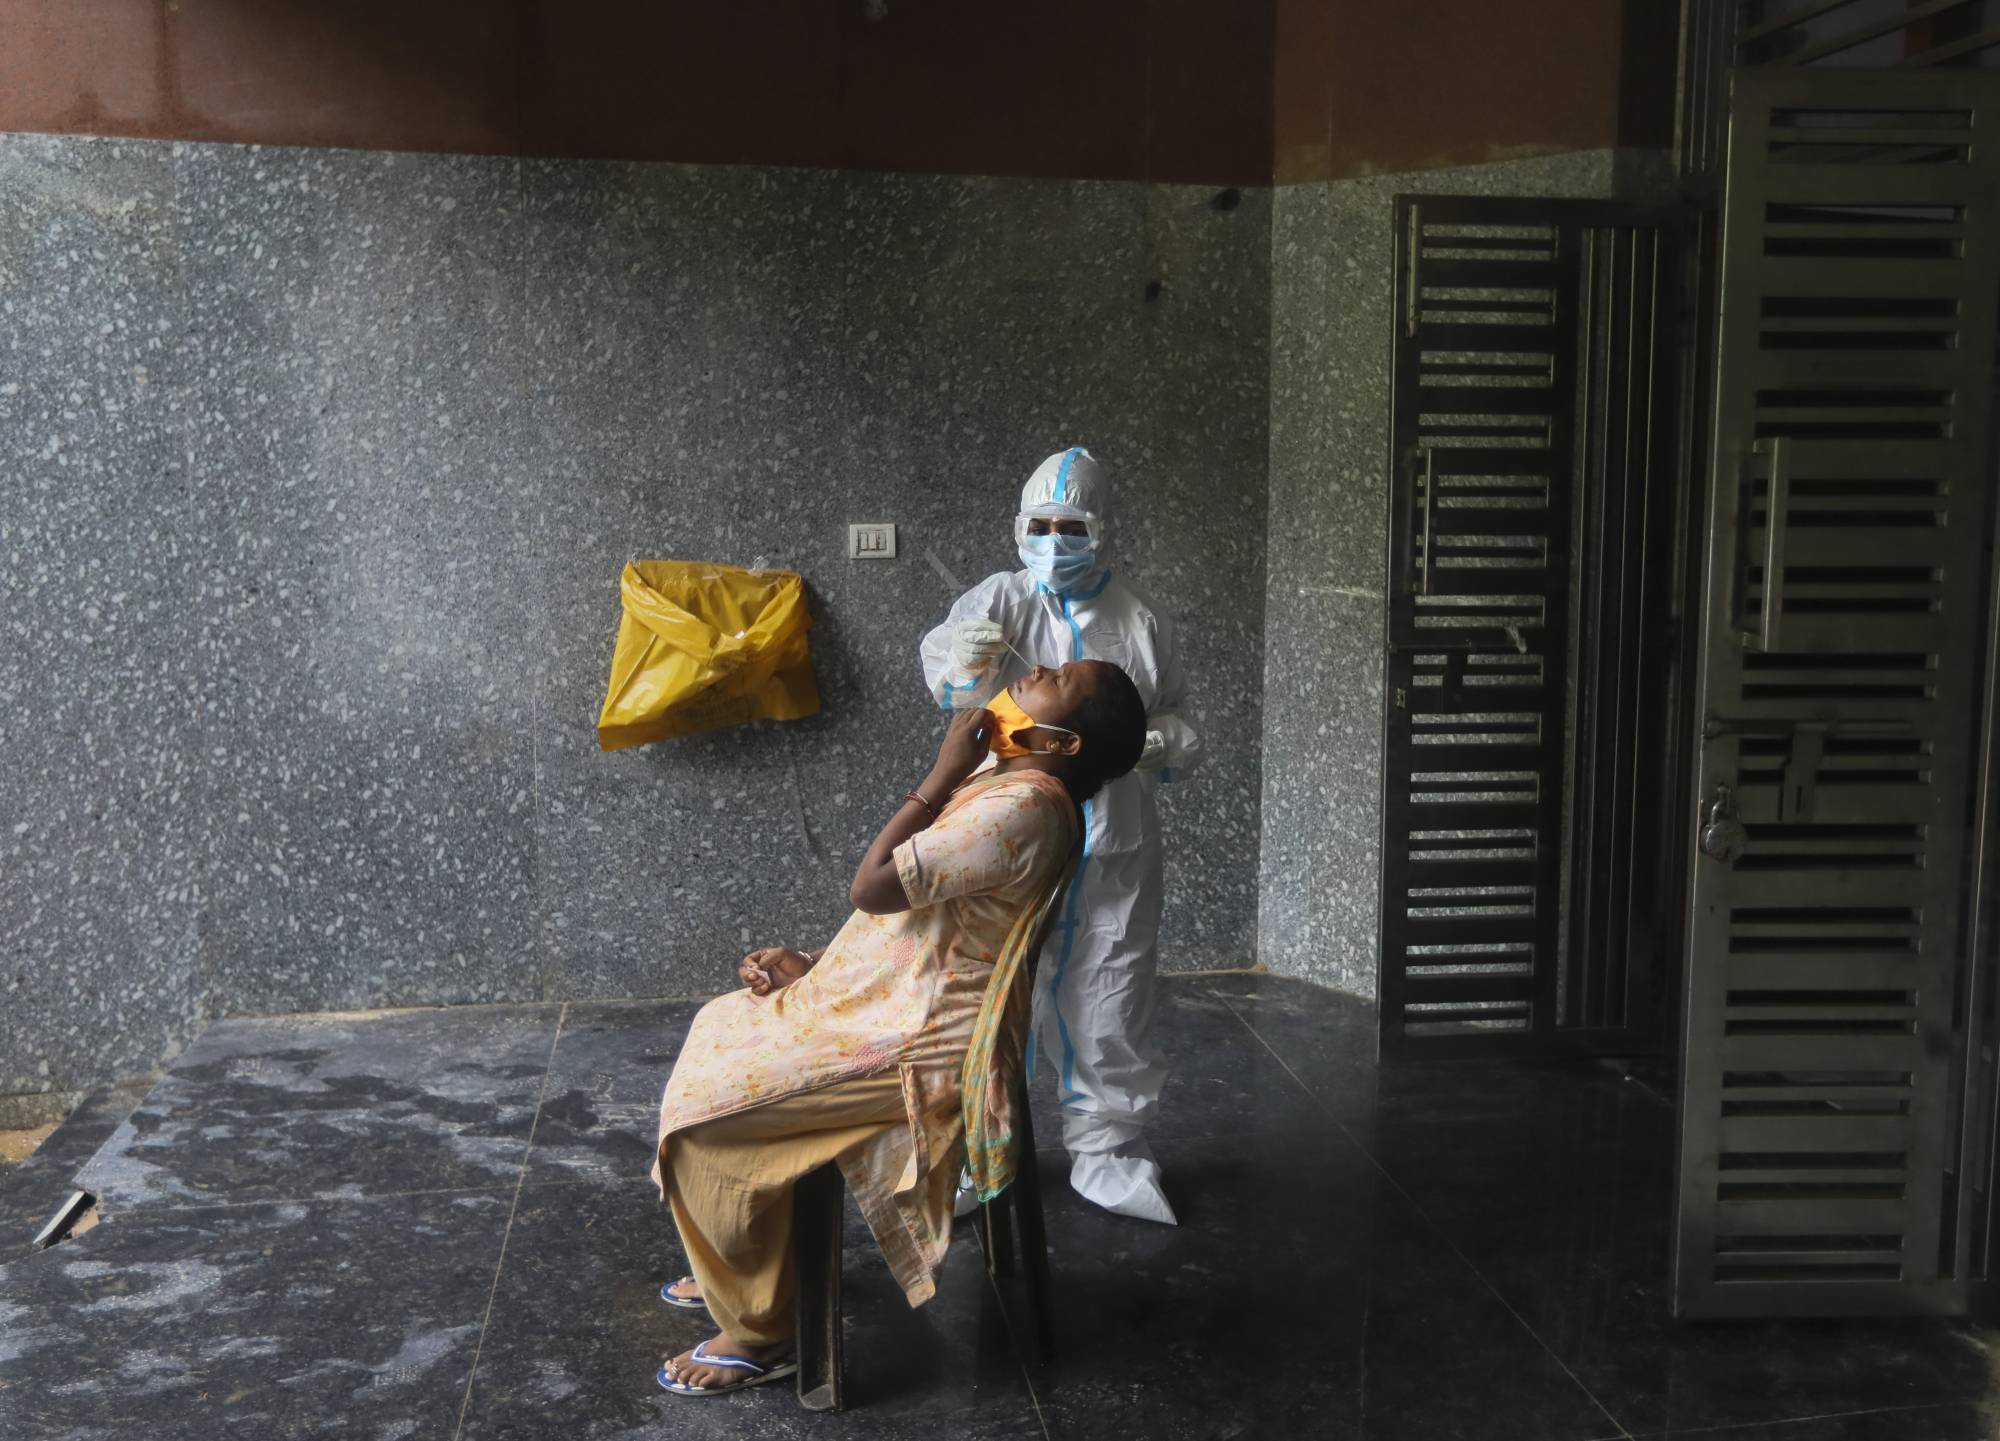 The Latest S Korea Orders Nationwide Pandemic Restrictions Federal News Network